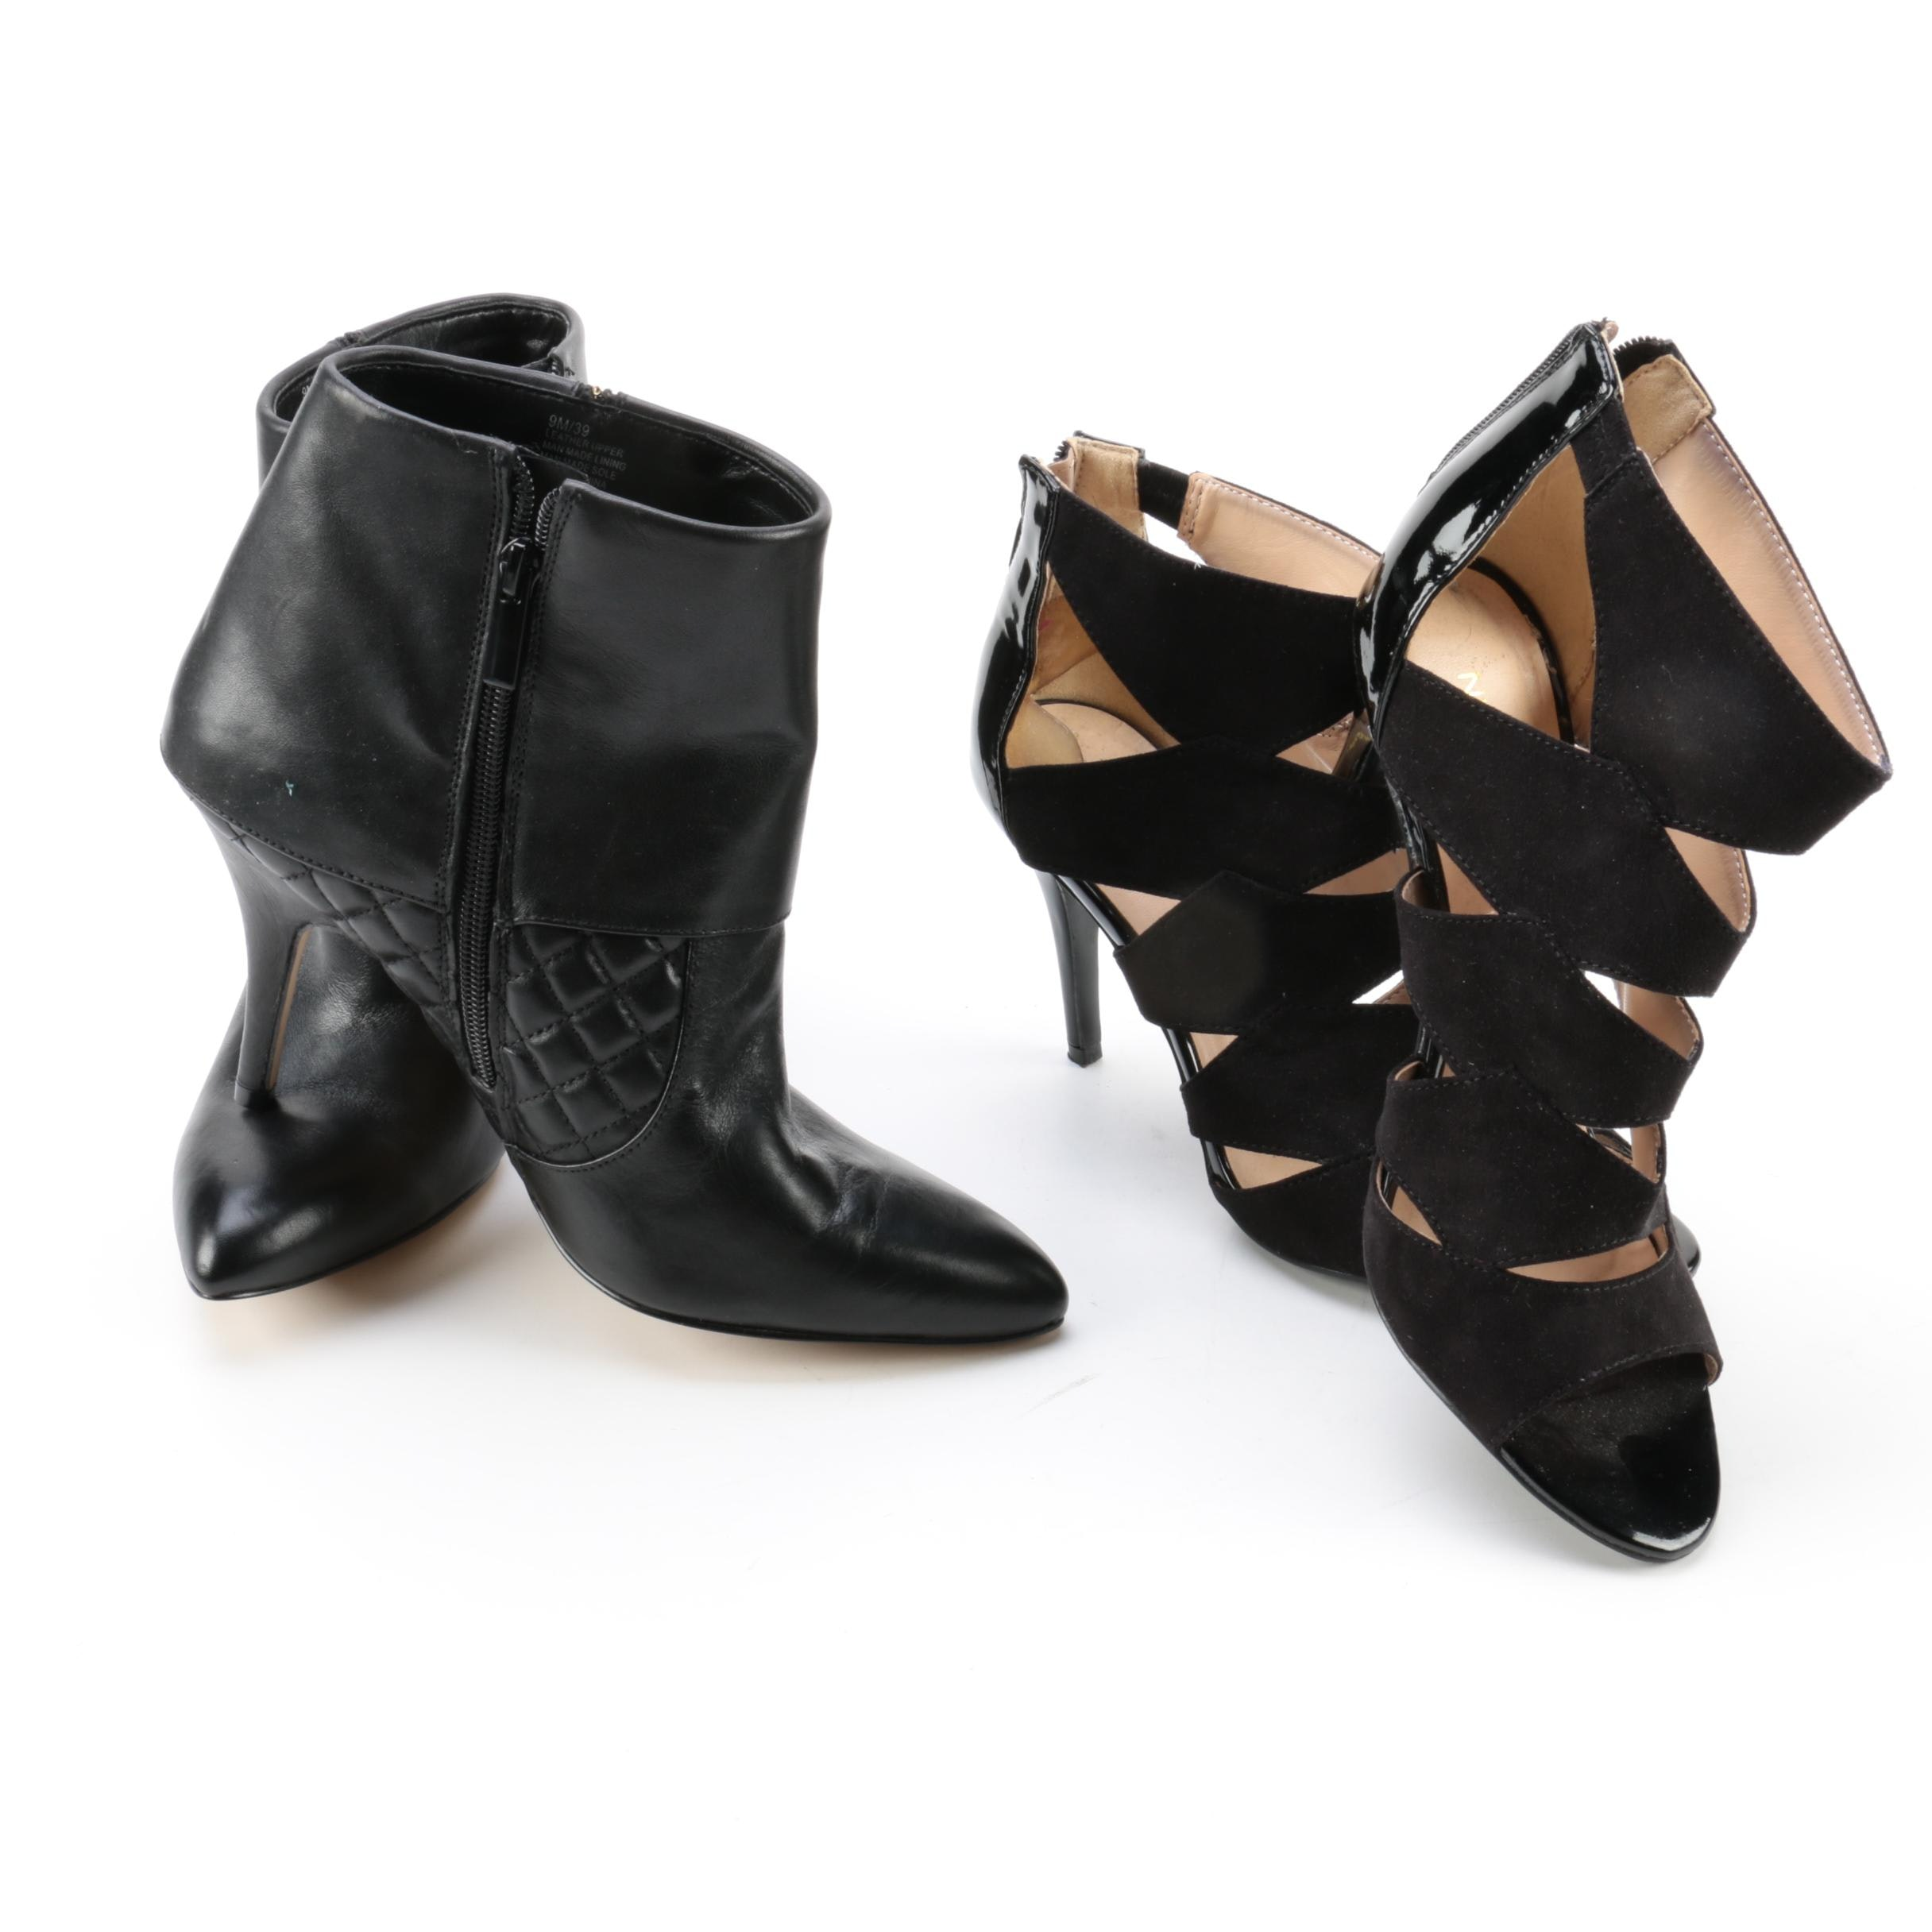 Women's Black Stiletto Heels and Booties